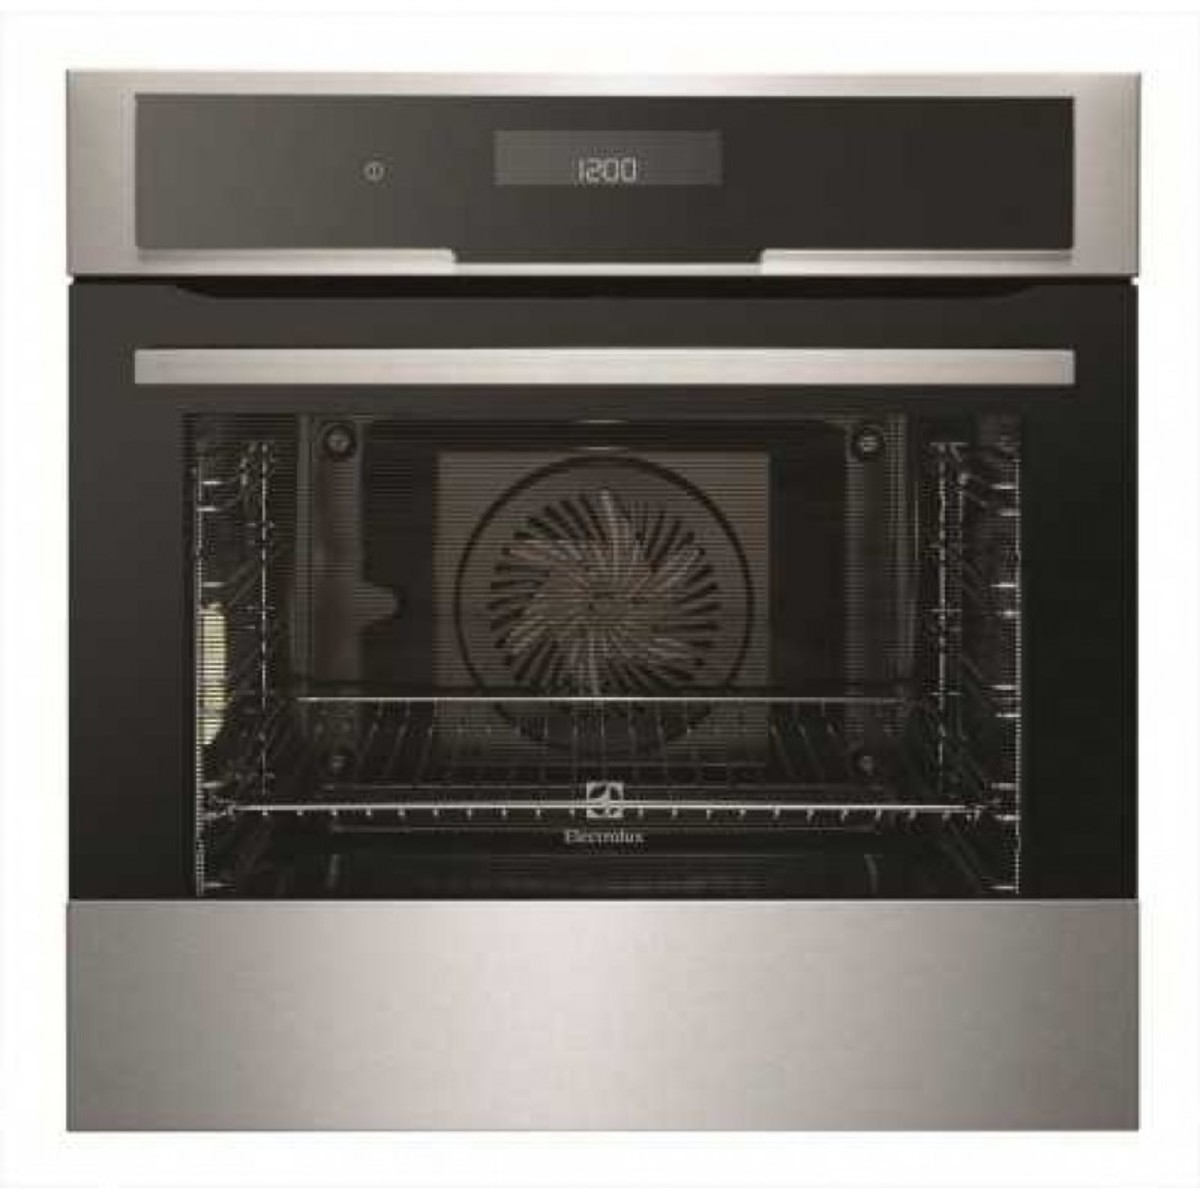 EOC5851FAX 74Litres Built-in Electric Oven (2-year Electrolux Warranty)